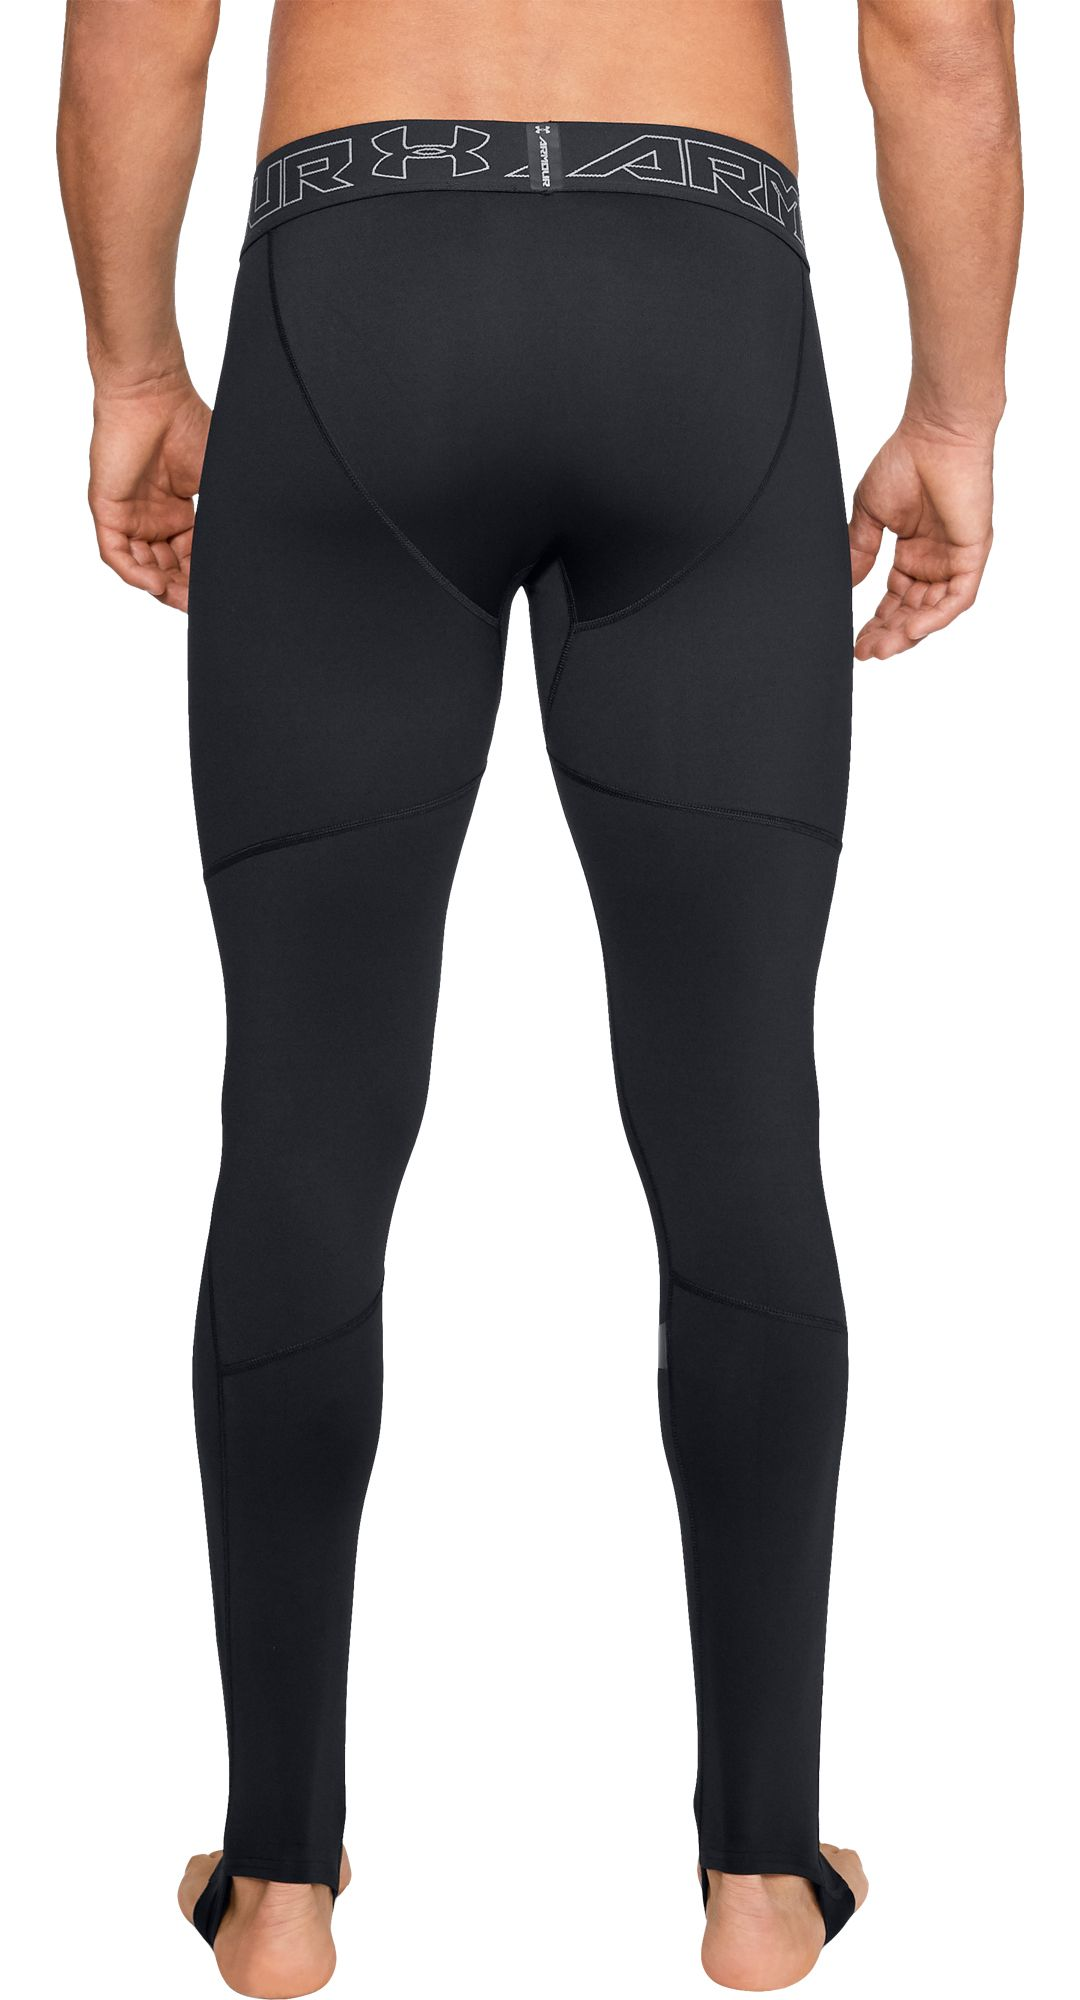 85addaa90621c1 Under Armour Men's Storm Cyclone ColdGear Leggings | DICK'S Sporting ...